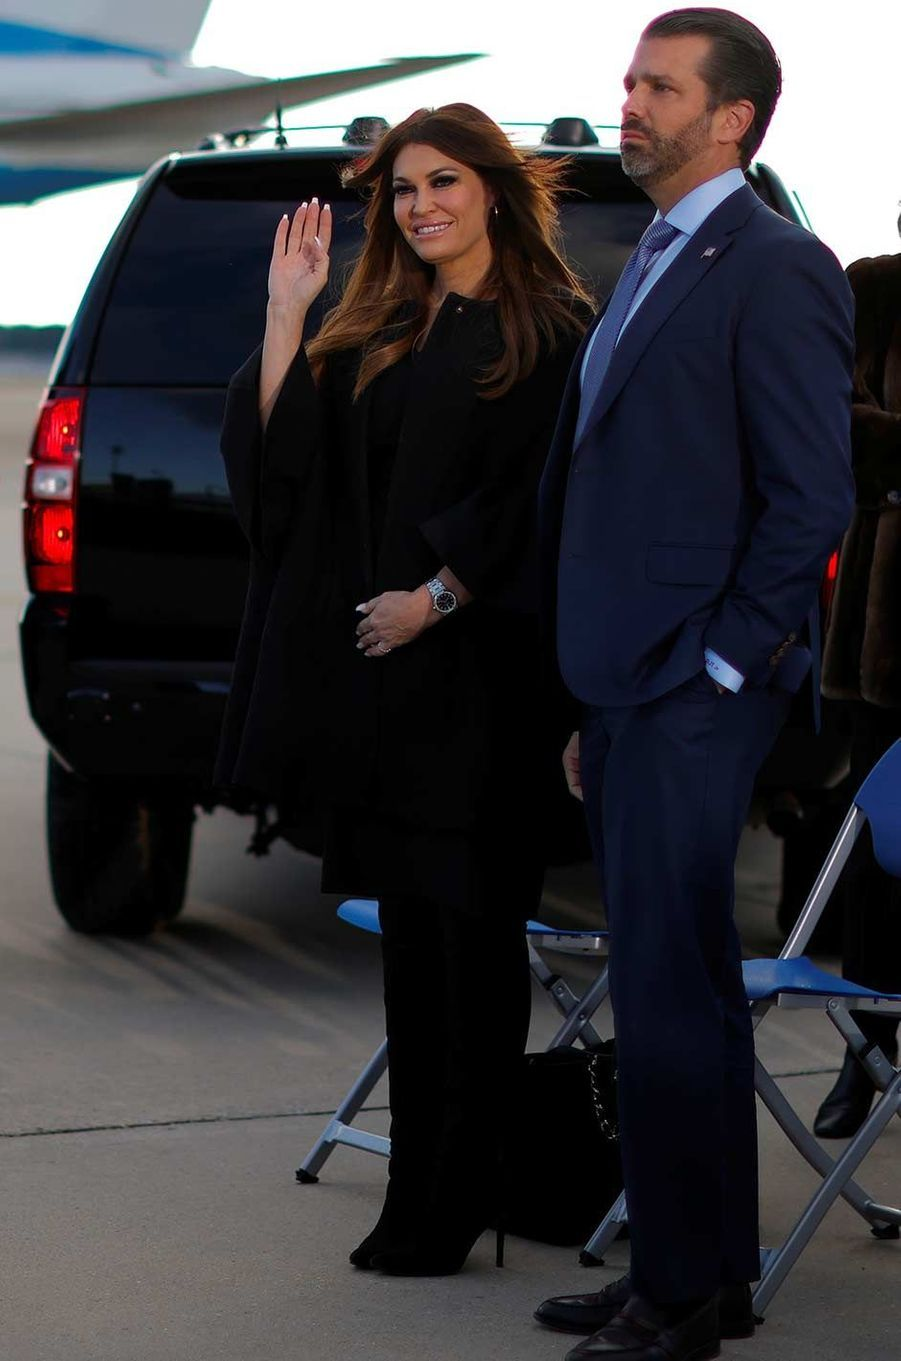 Kimberly Guilfoyle et Donald Trump Jr sur la base Andrews, le 20 janvier 2021.